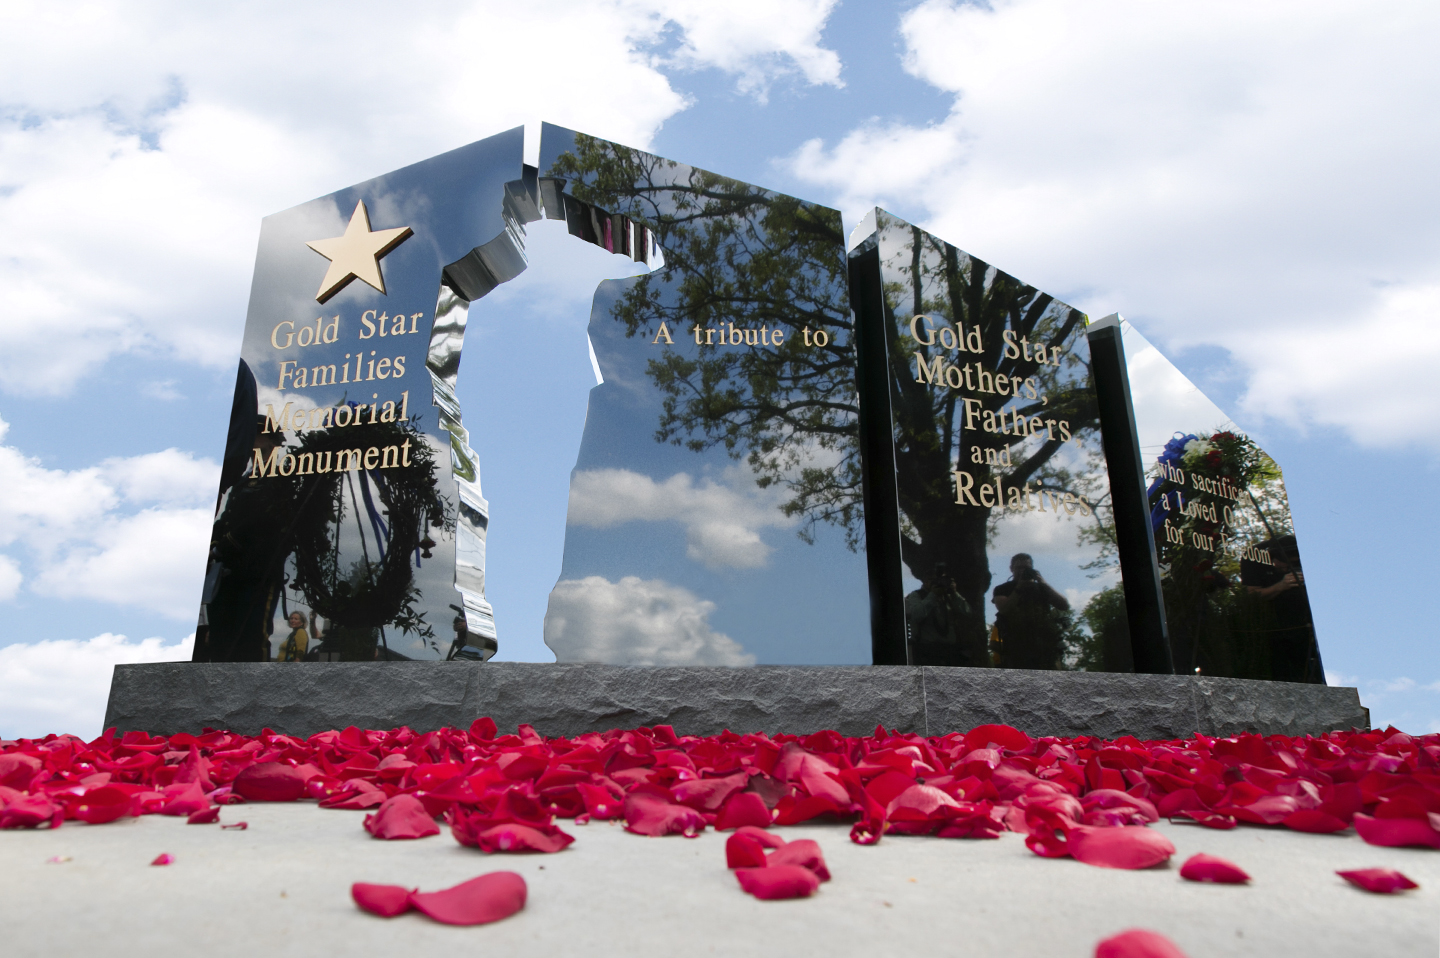 The Missouri Gold Star Families Memorial